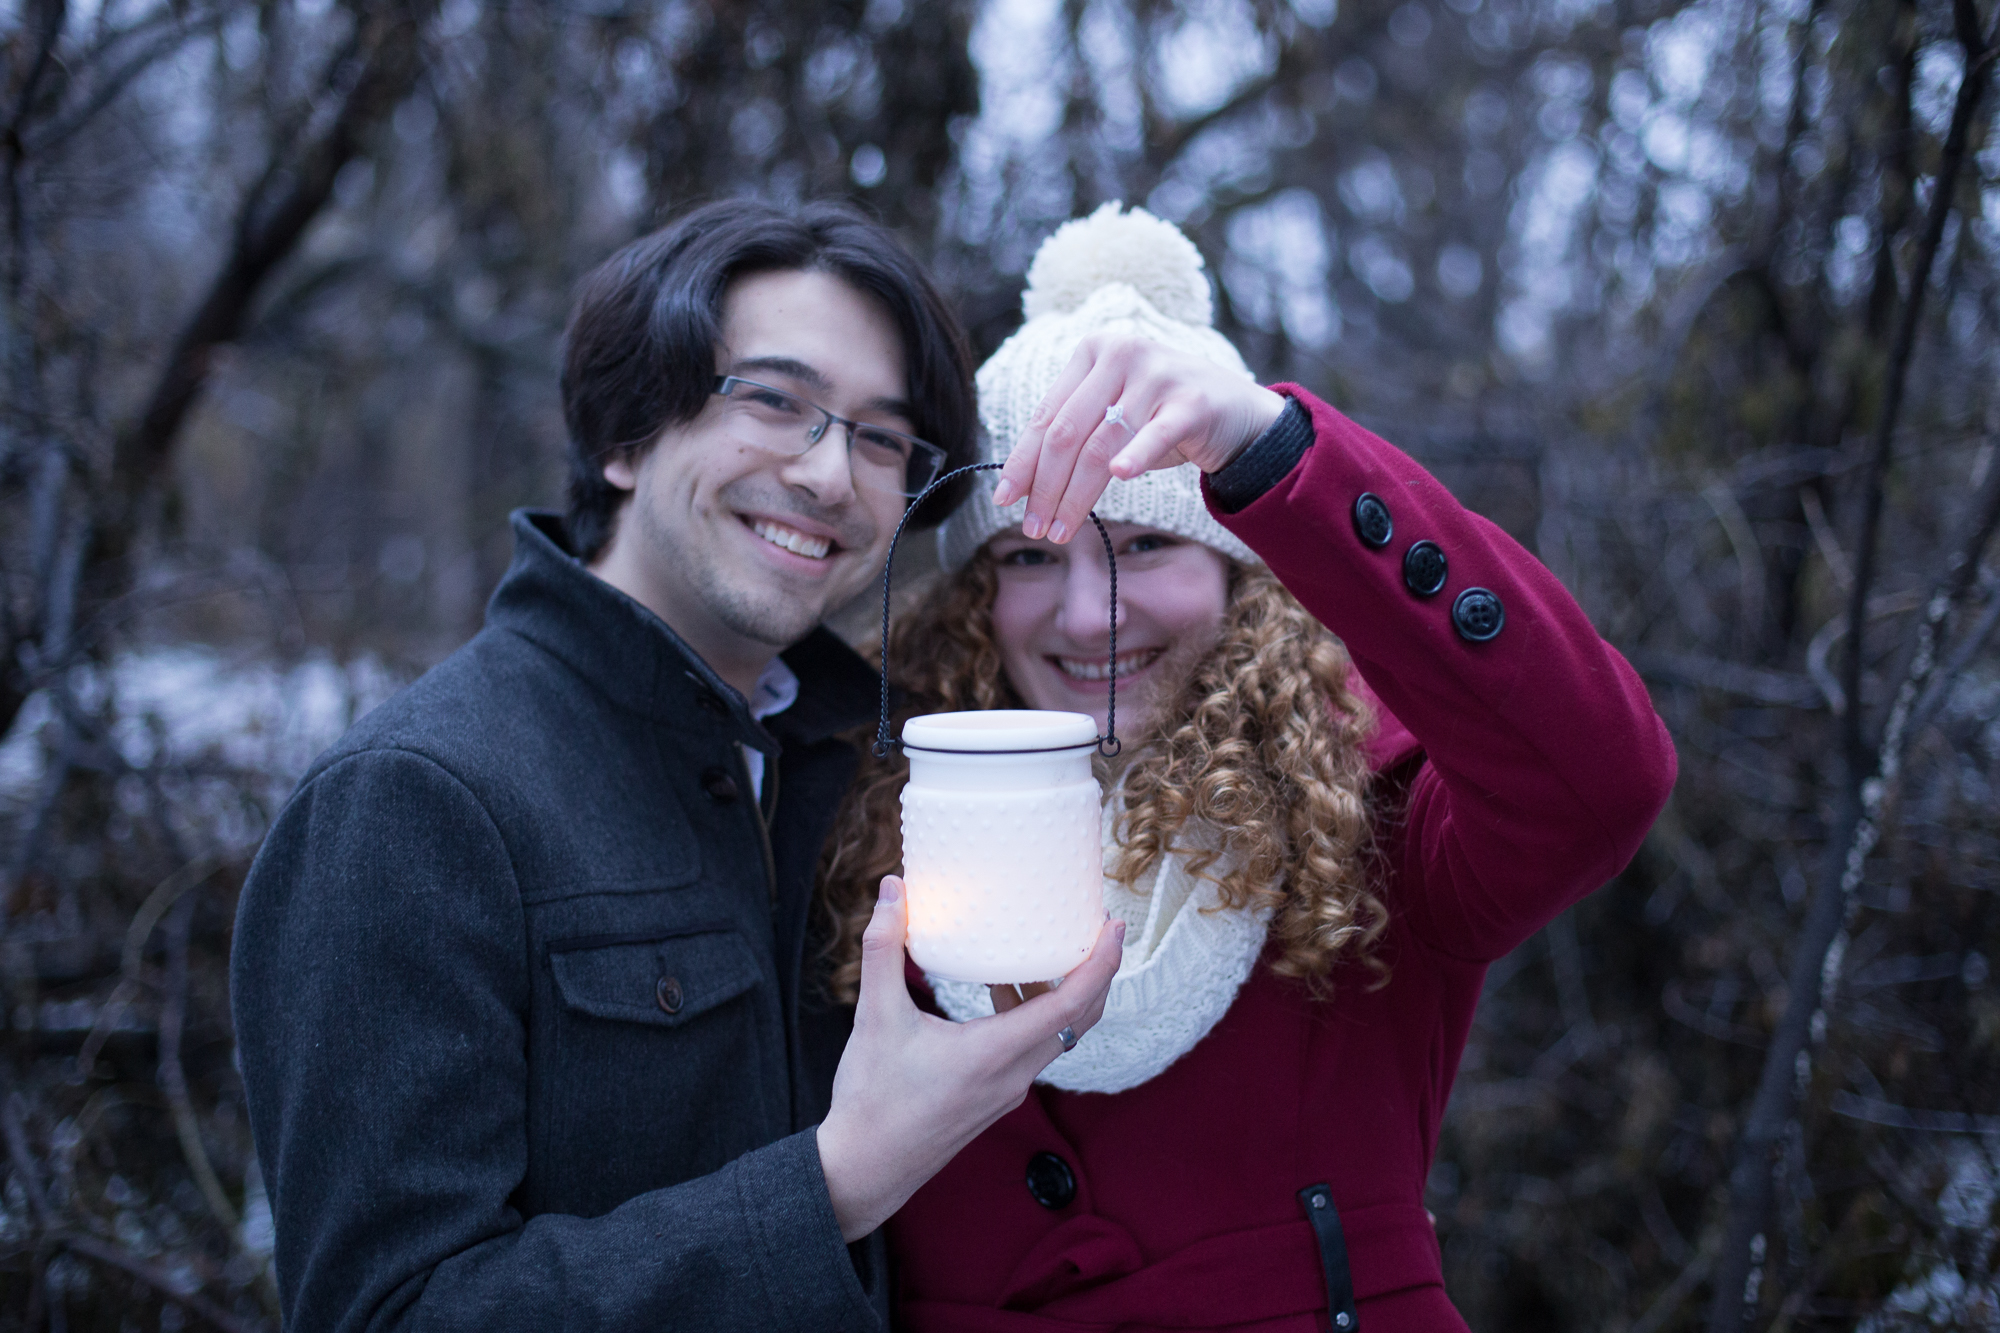 engagement-small-size-4-of-4.jpg